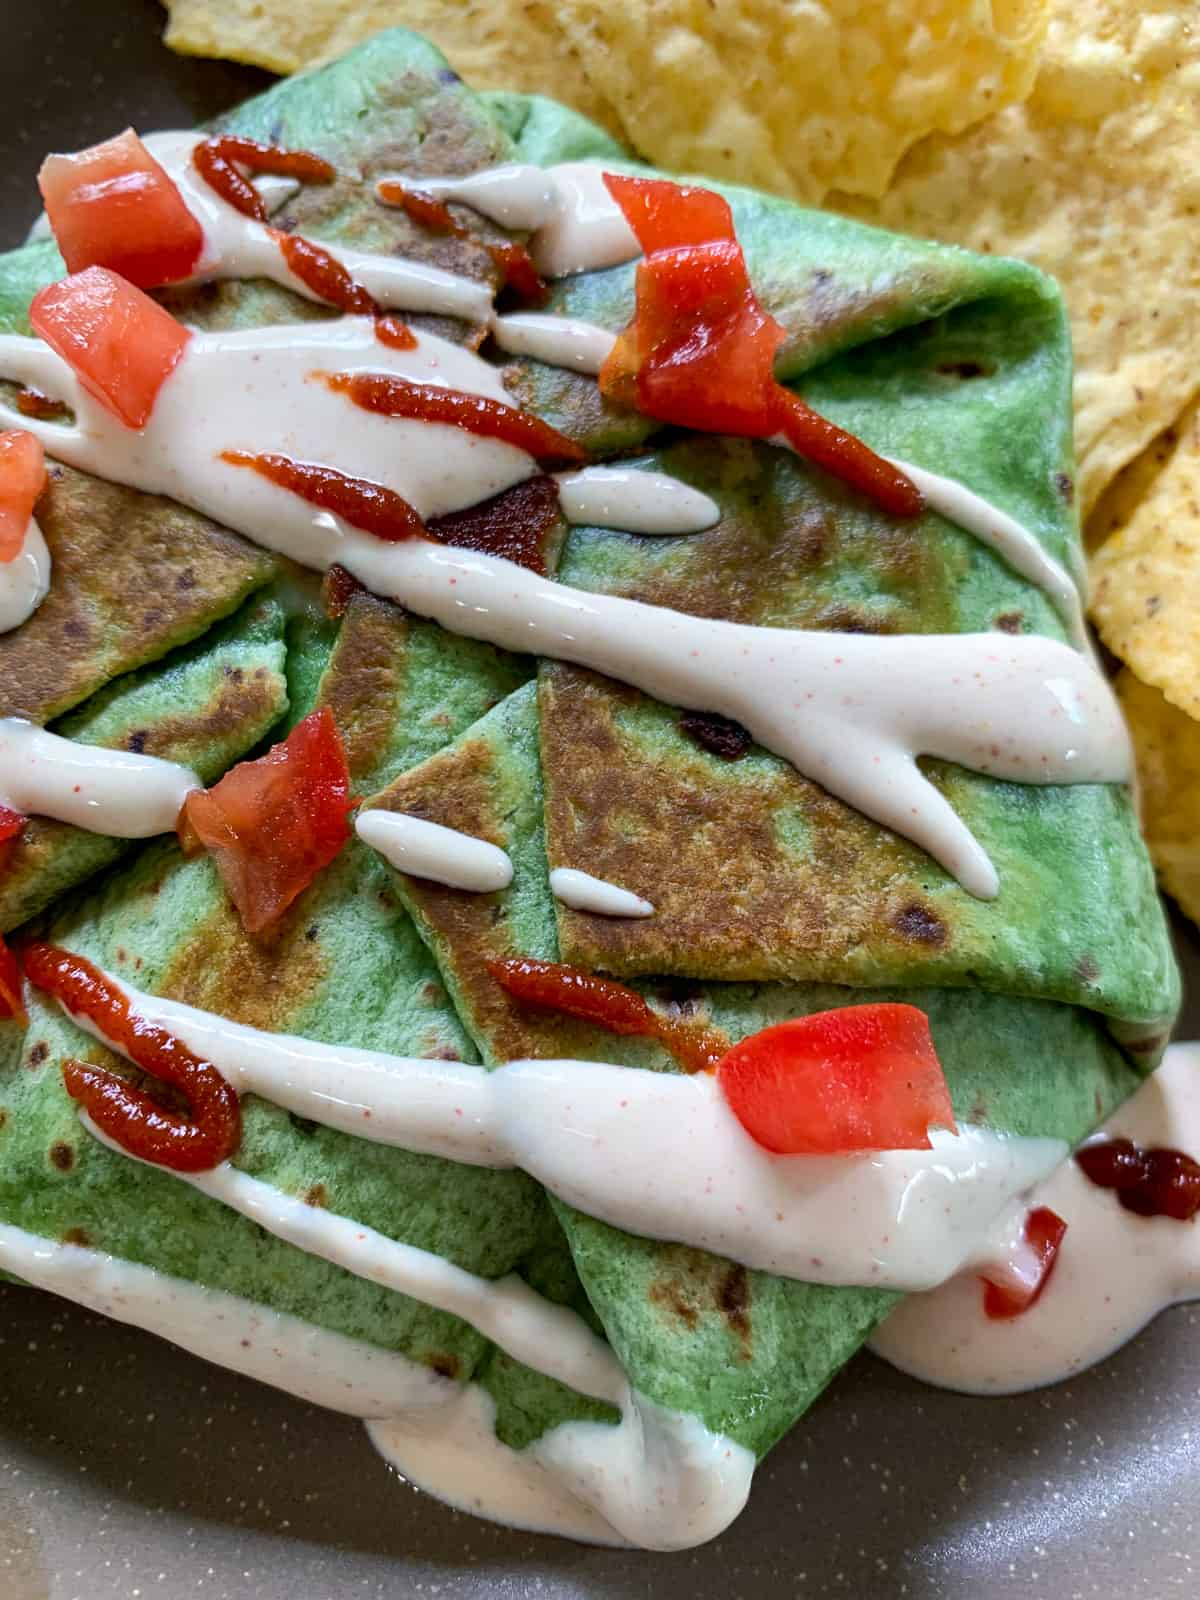 Wrap on a plate with chips and sauce.